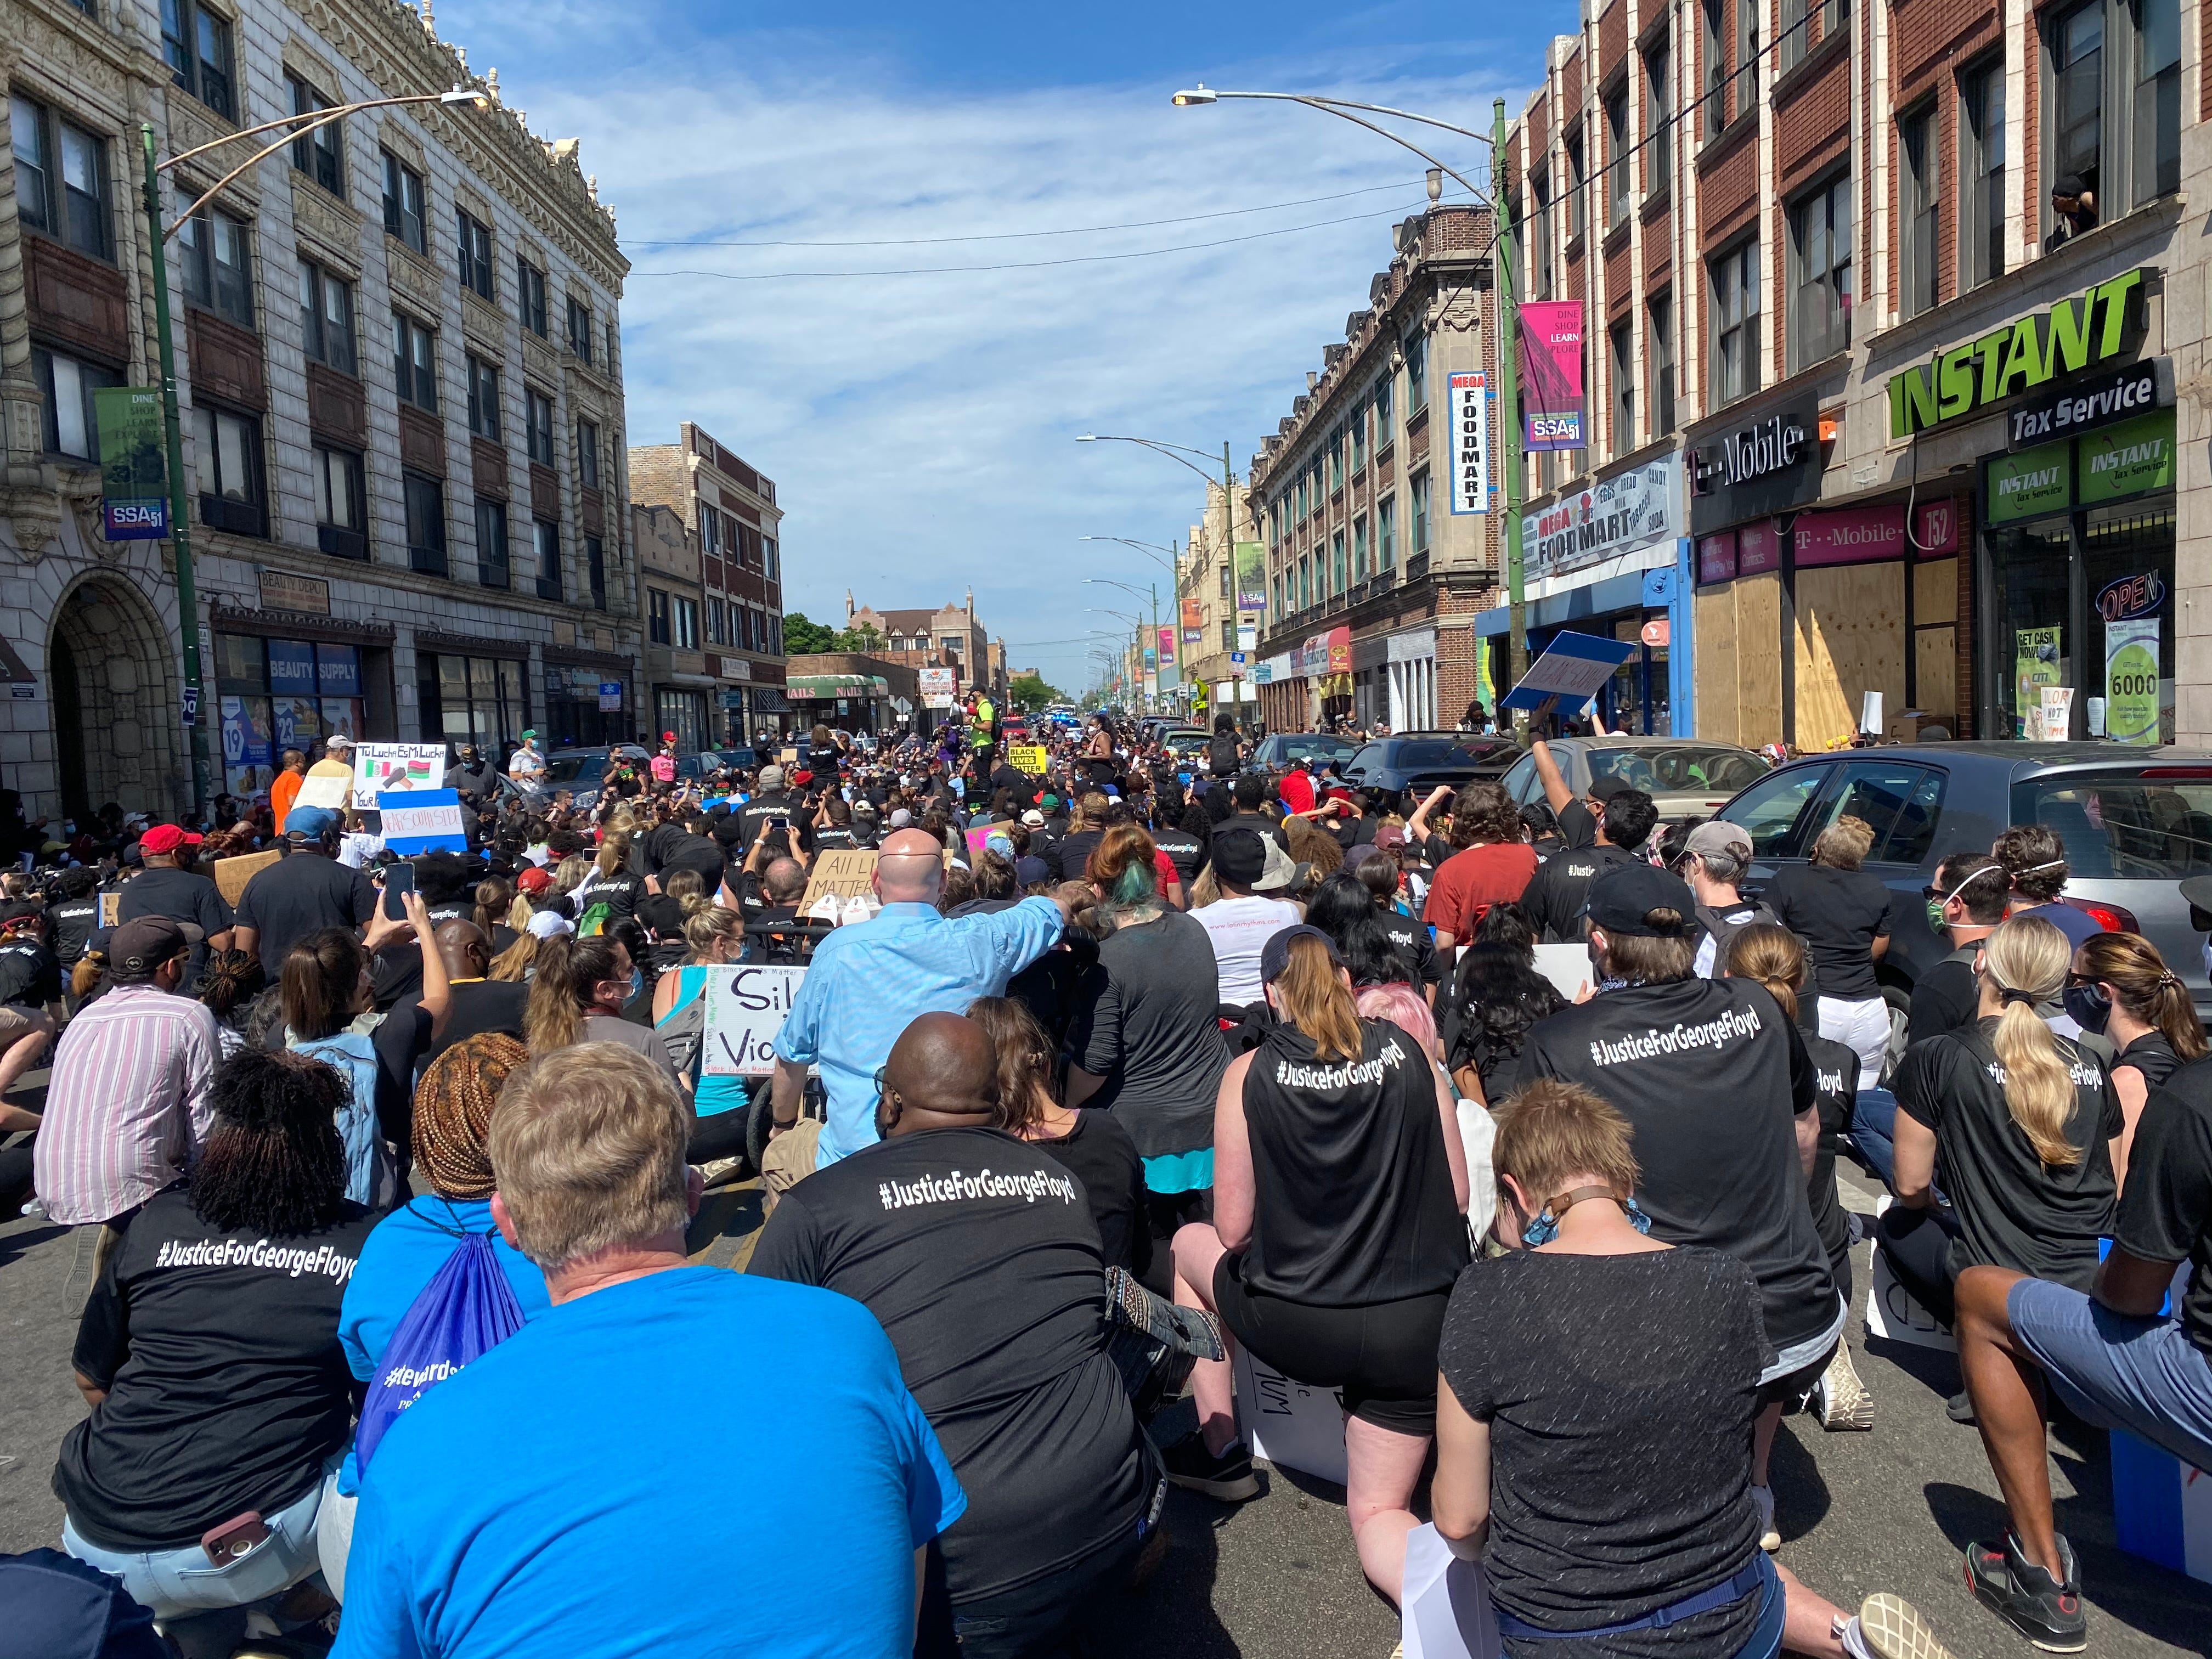 """Hundreds of people take a knee at a """"Peace Walk"""" in Chicago's South Side Chatham neighborhood on June 7, 2020."""